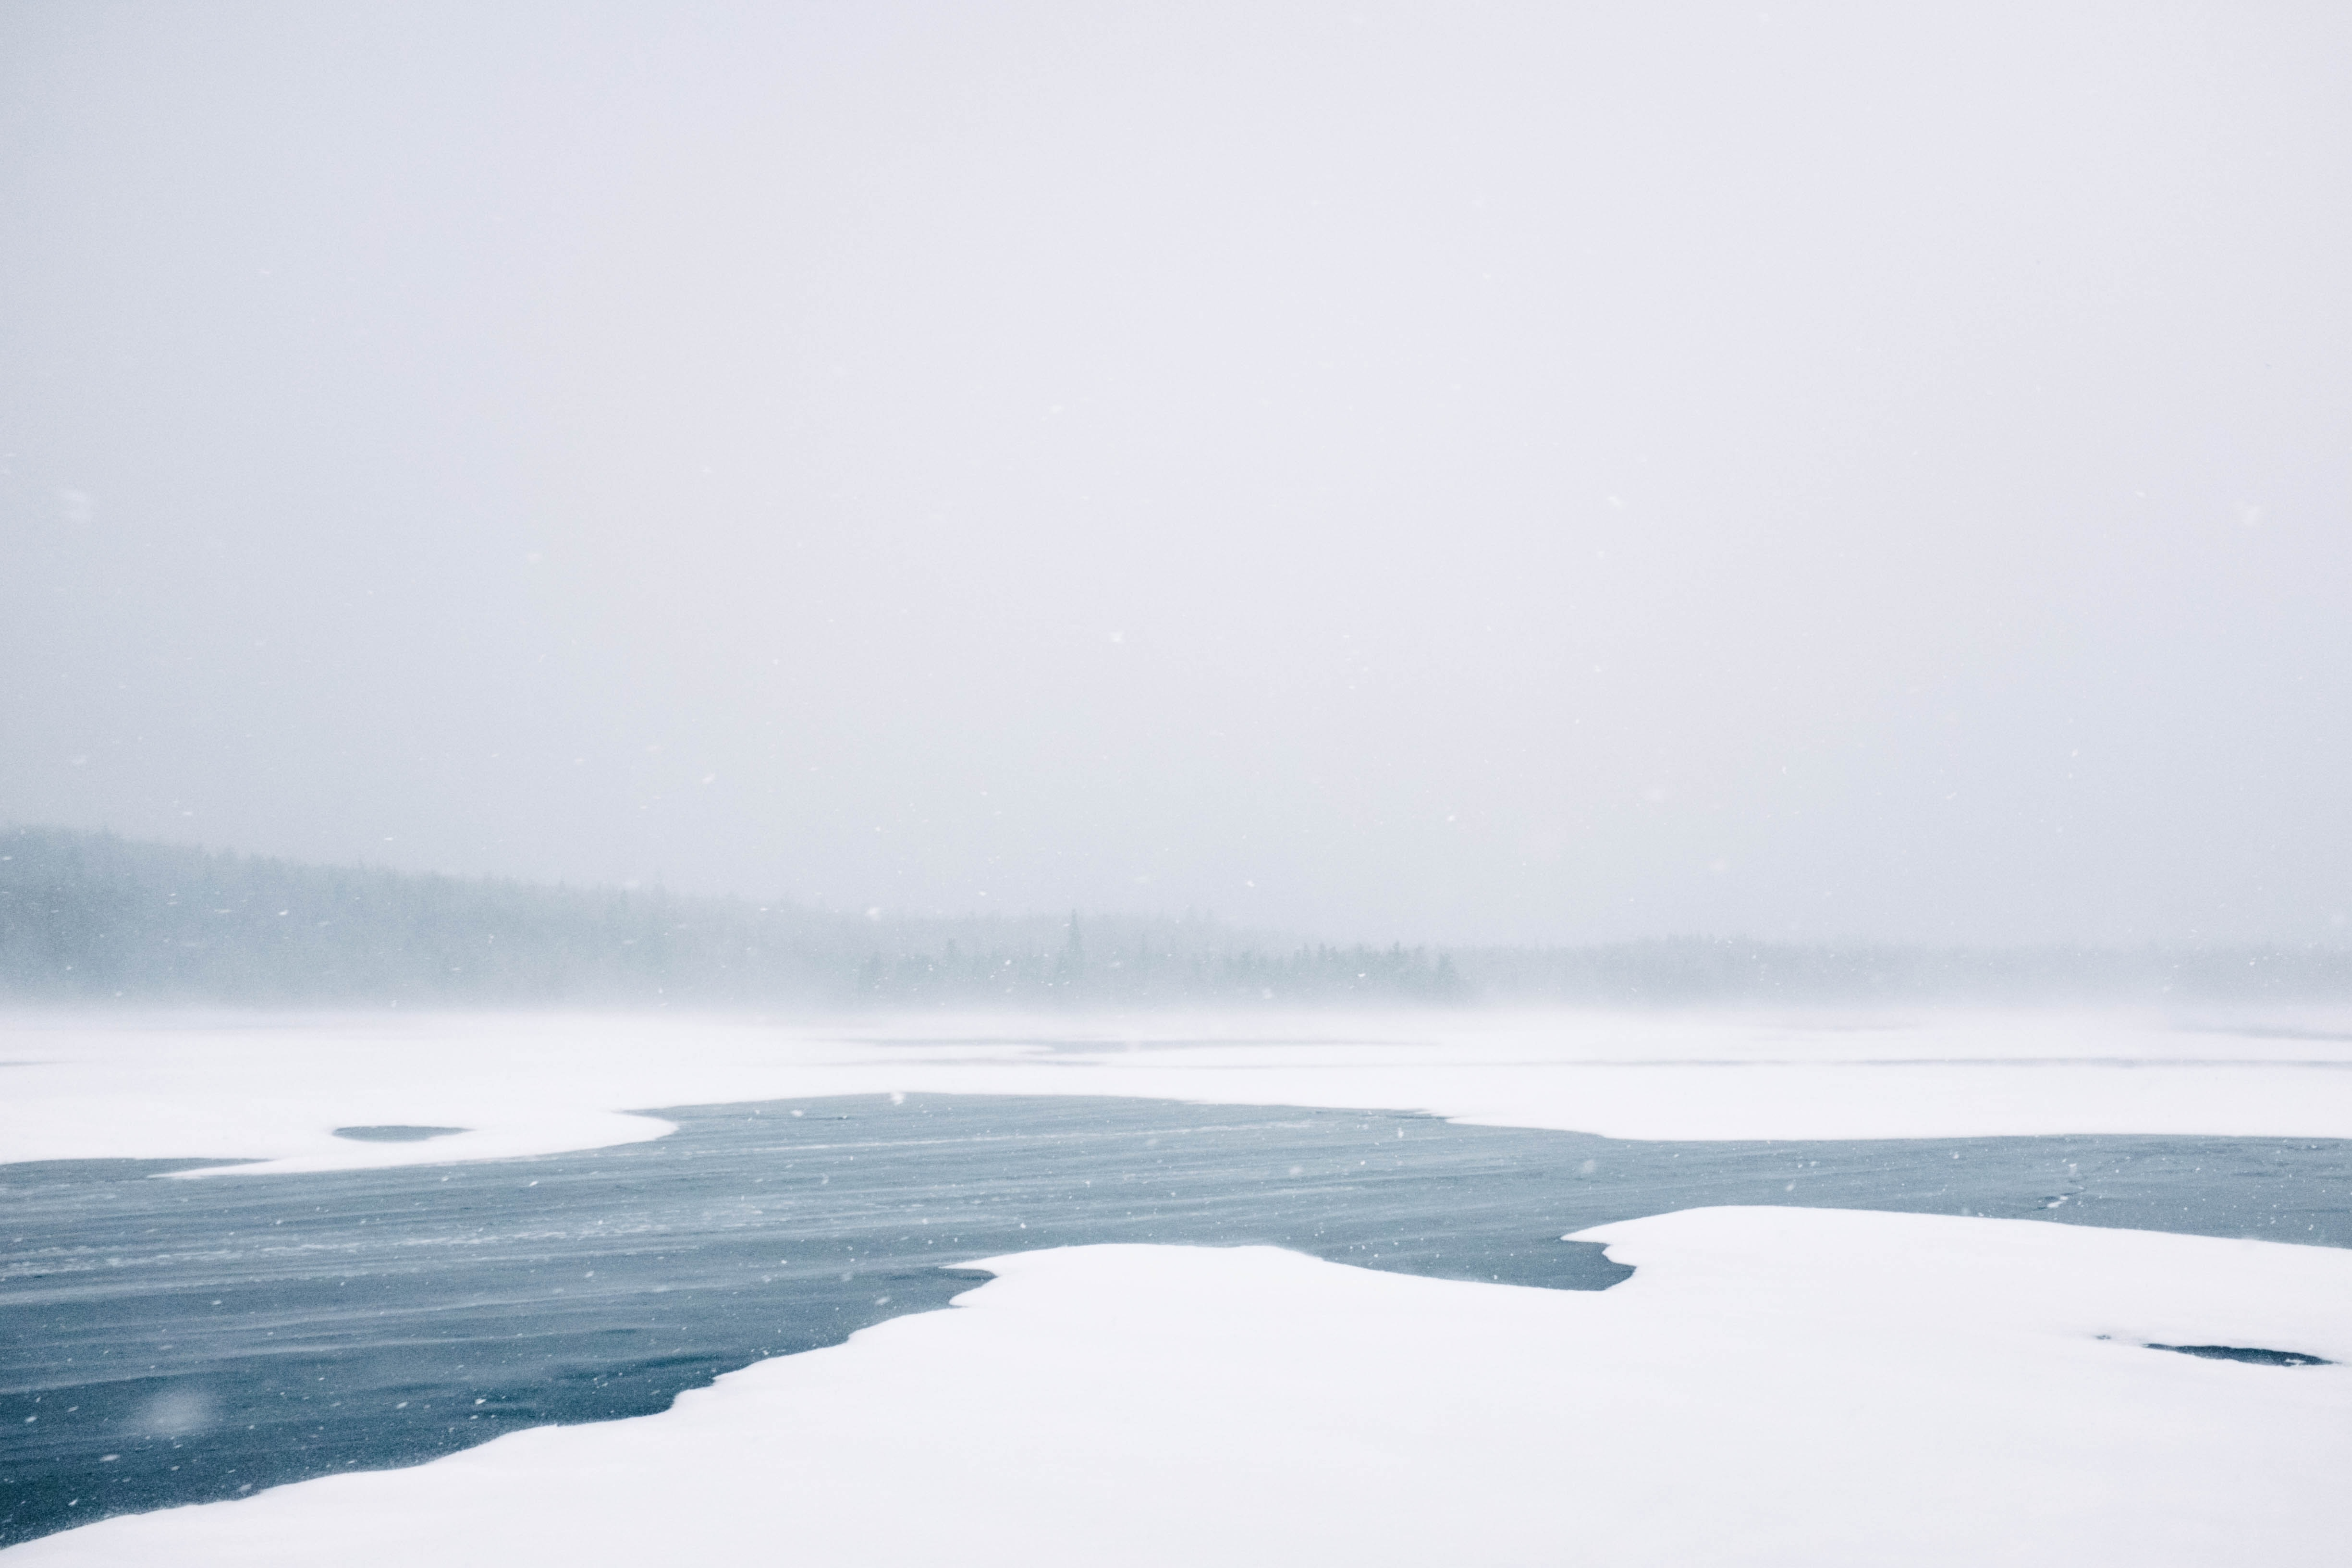 Snow covered lake during a blizzard with frozen water throughout